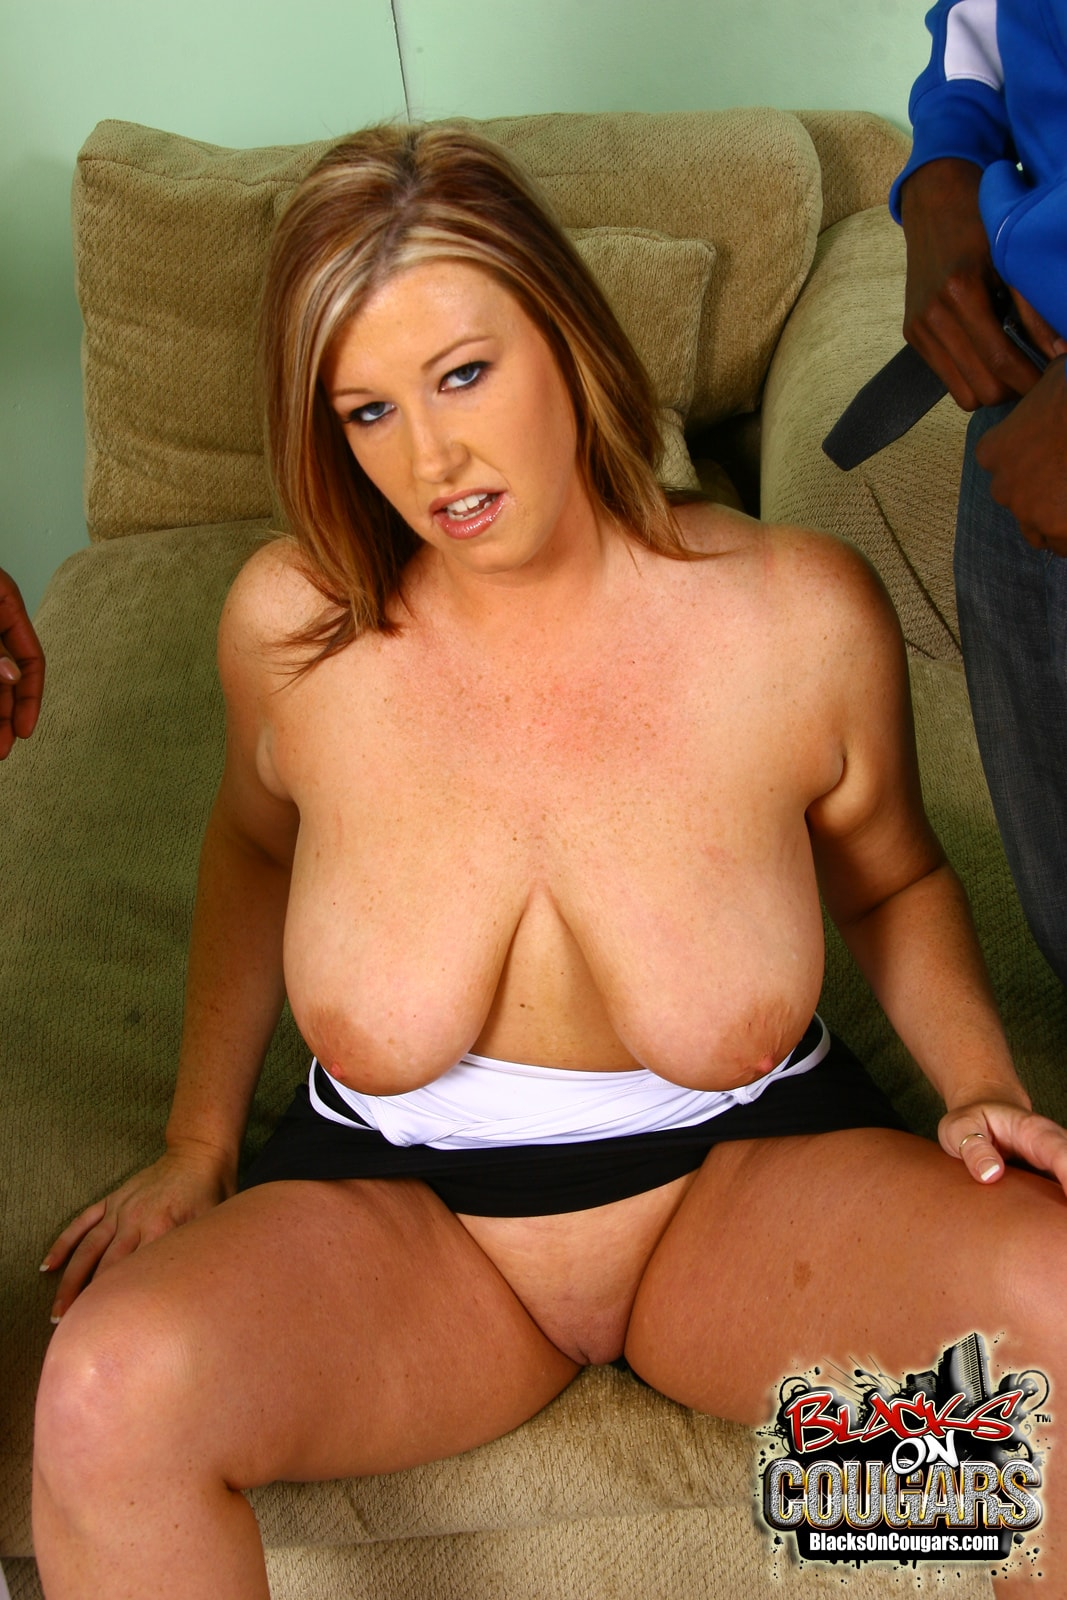 Dogfart '- Blacks On Cougars' starring Zoey Andrews (Photo 9)